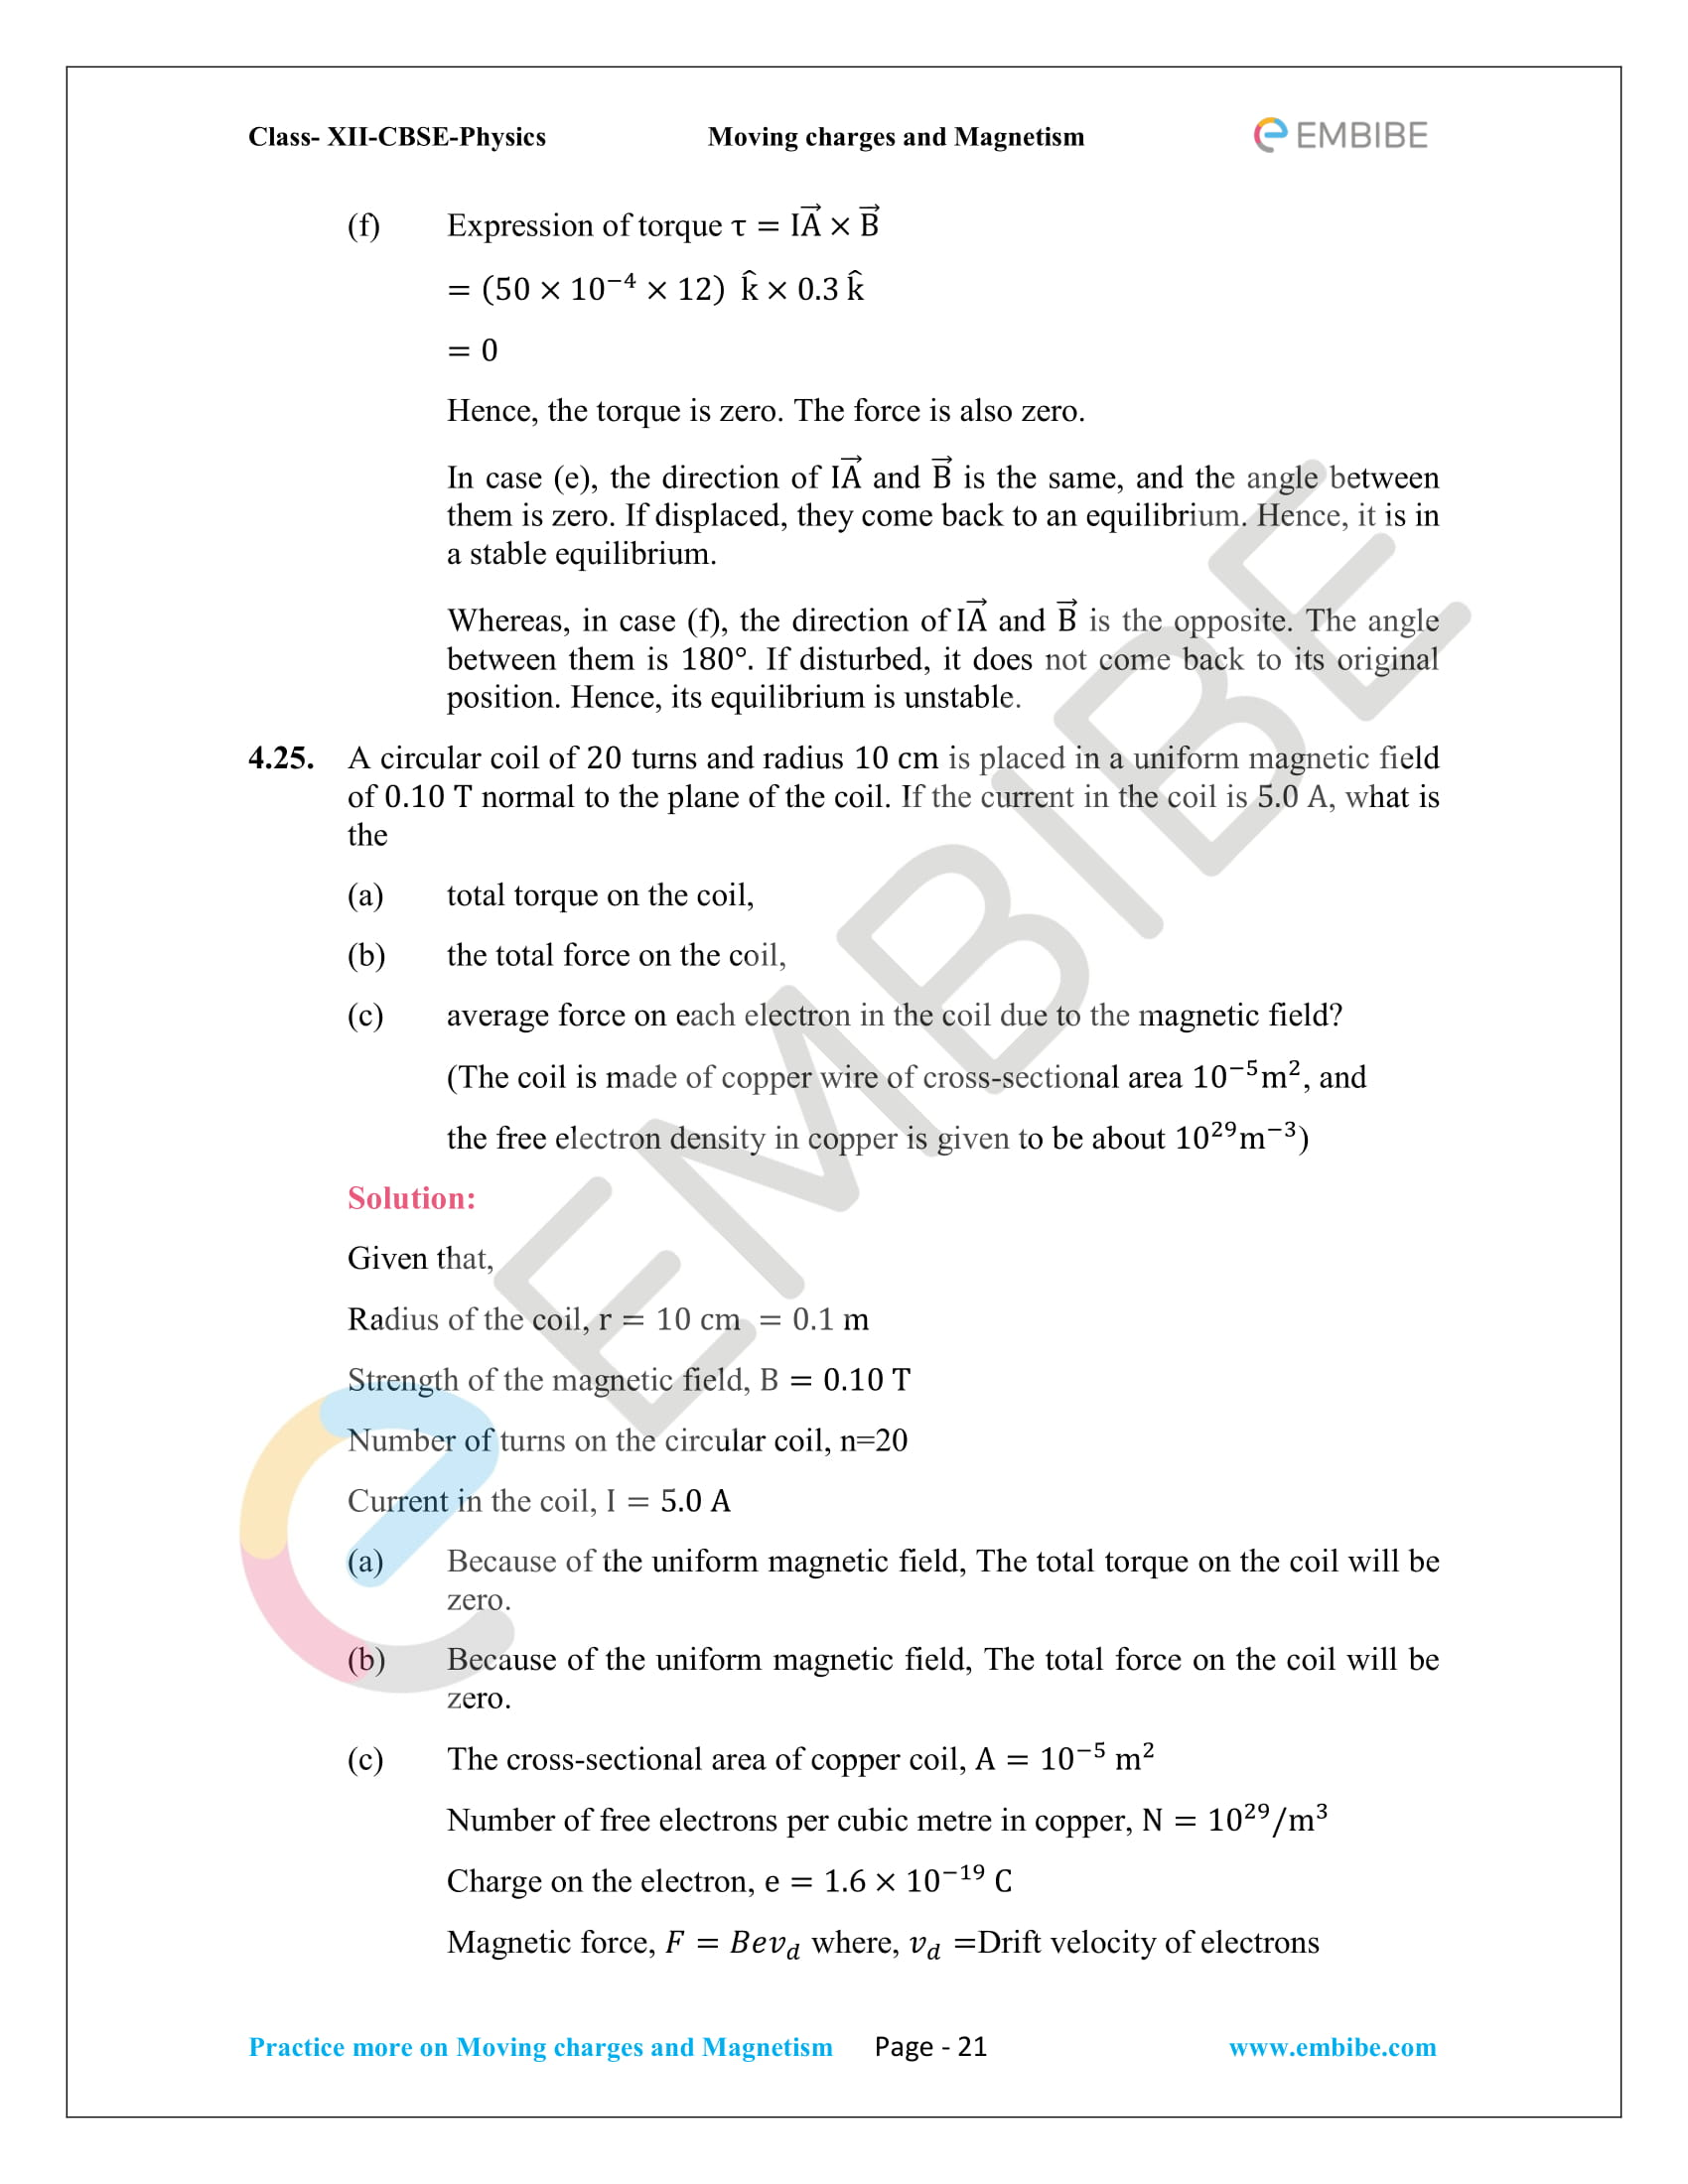 NCERT_Grade 12_Physics_Ch_04_Moving Charges and Magnetism-21